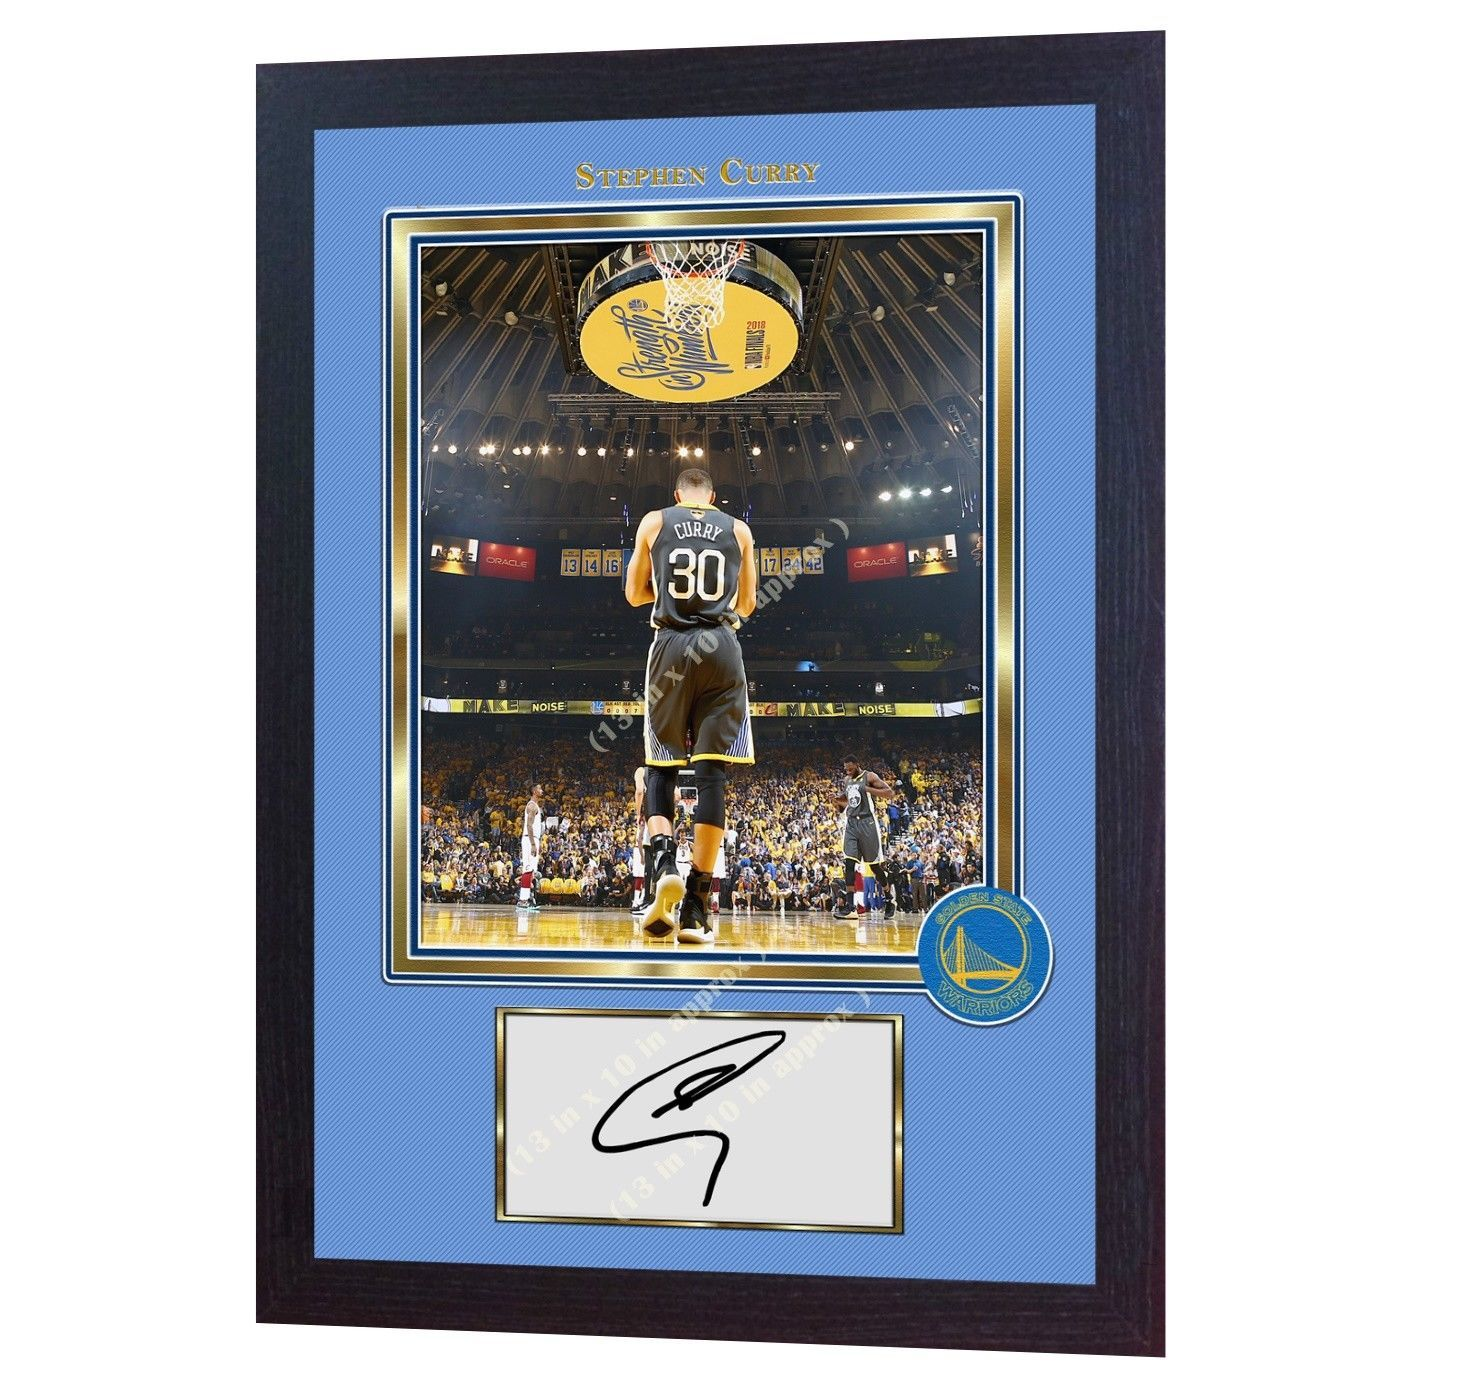 new Stephen Curry Golden State Warriors autographed signed photo print Framed